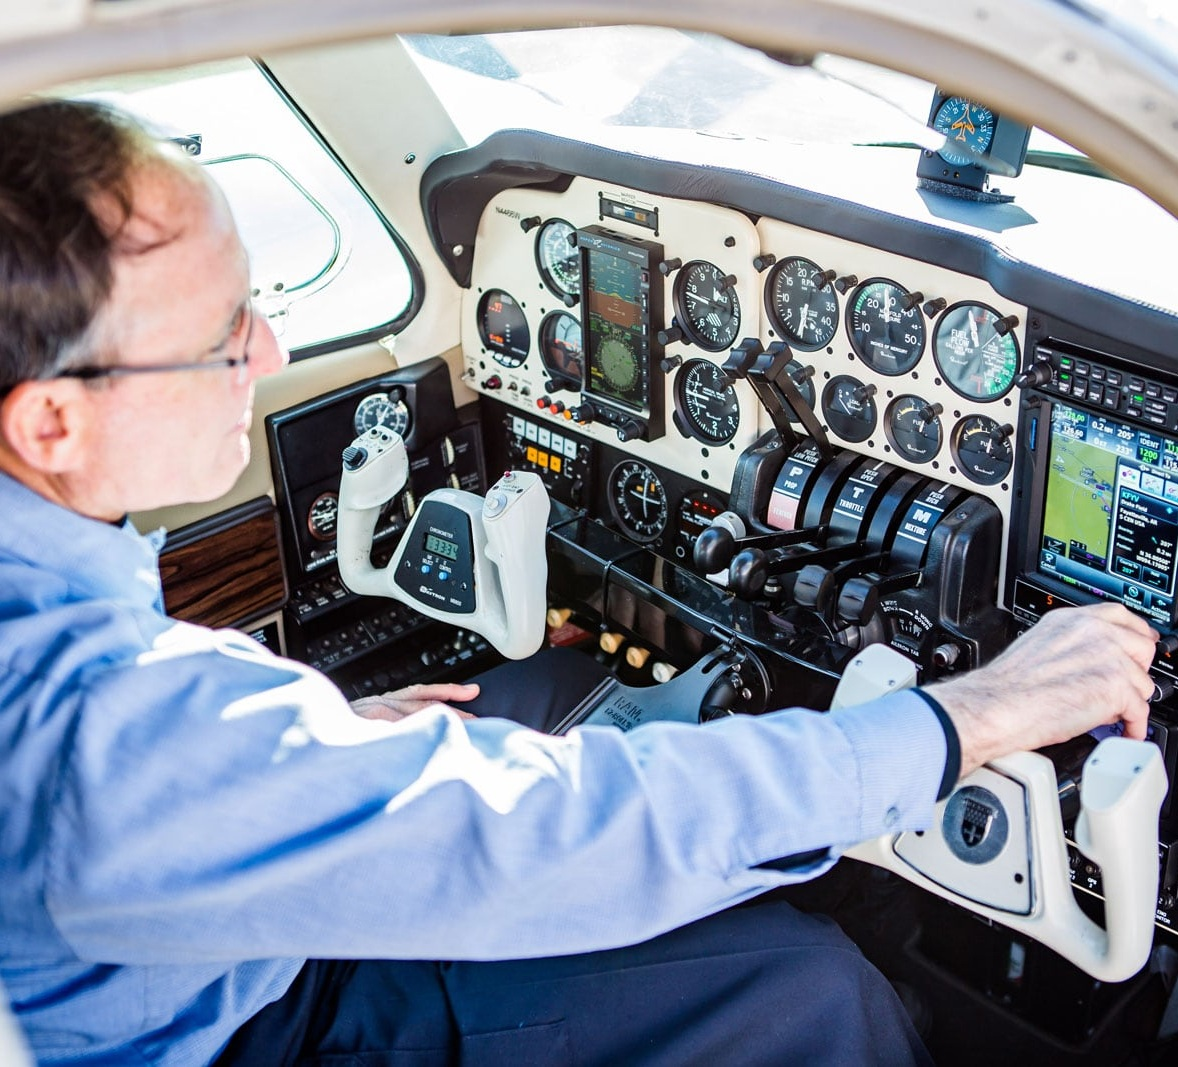 Wings Avionics - Award winning aircraft service shop, established in 1998.